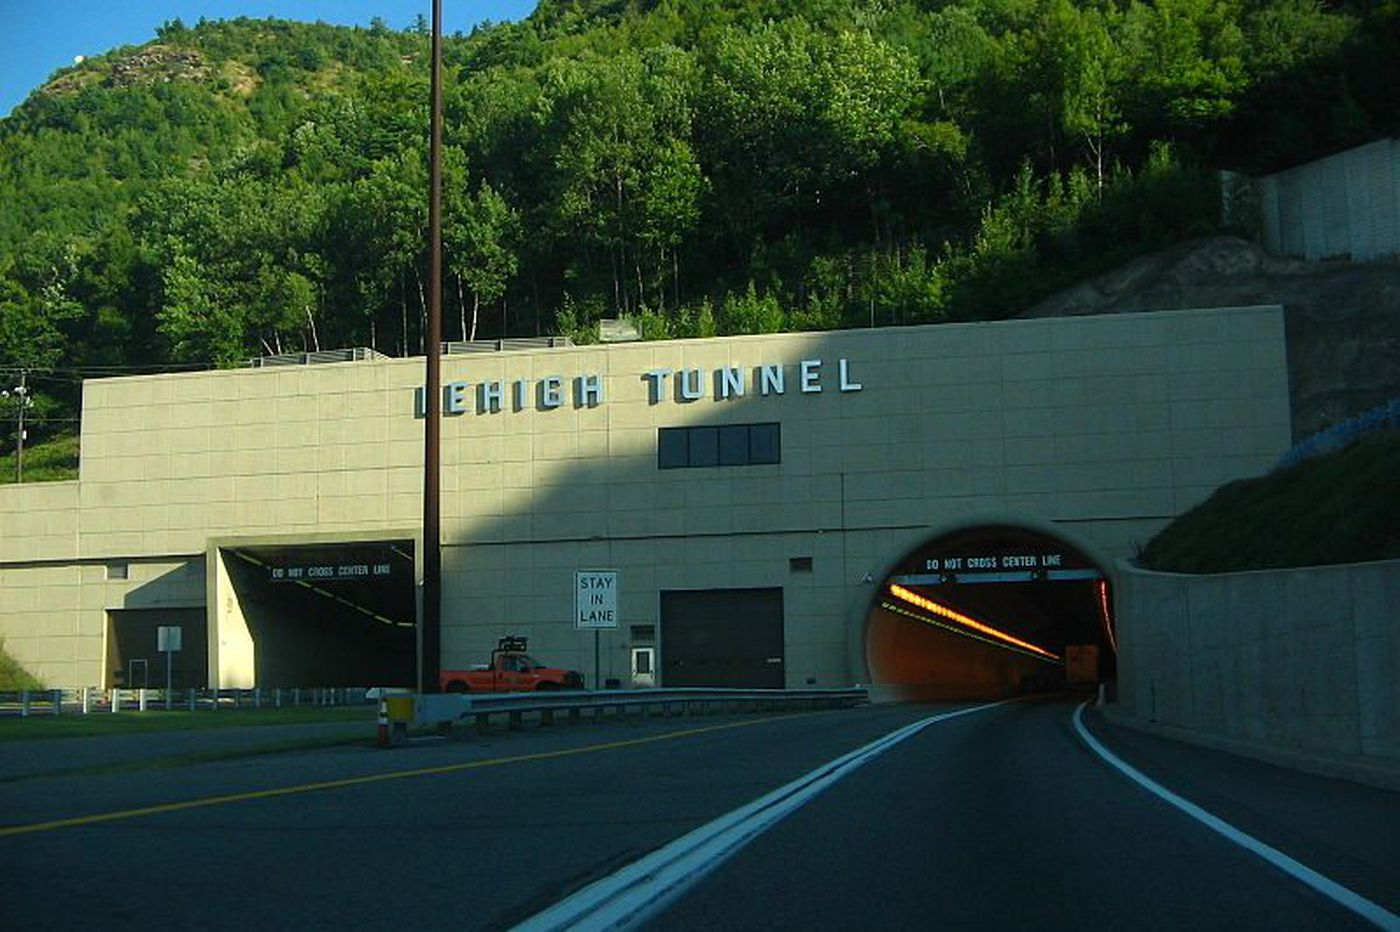 Feds join investigation of death of South Jersey trucker in Pa. Turnpike tunnel mishap